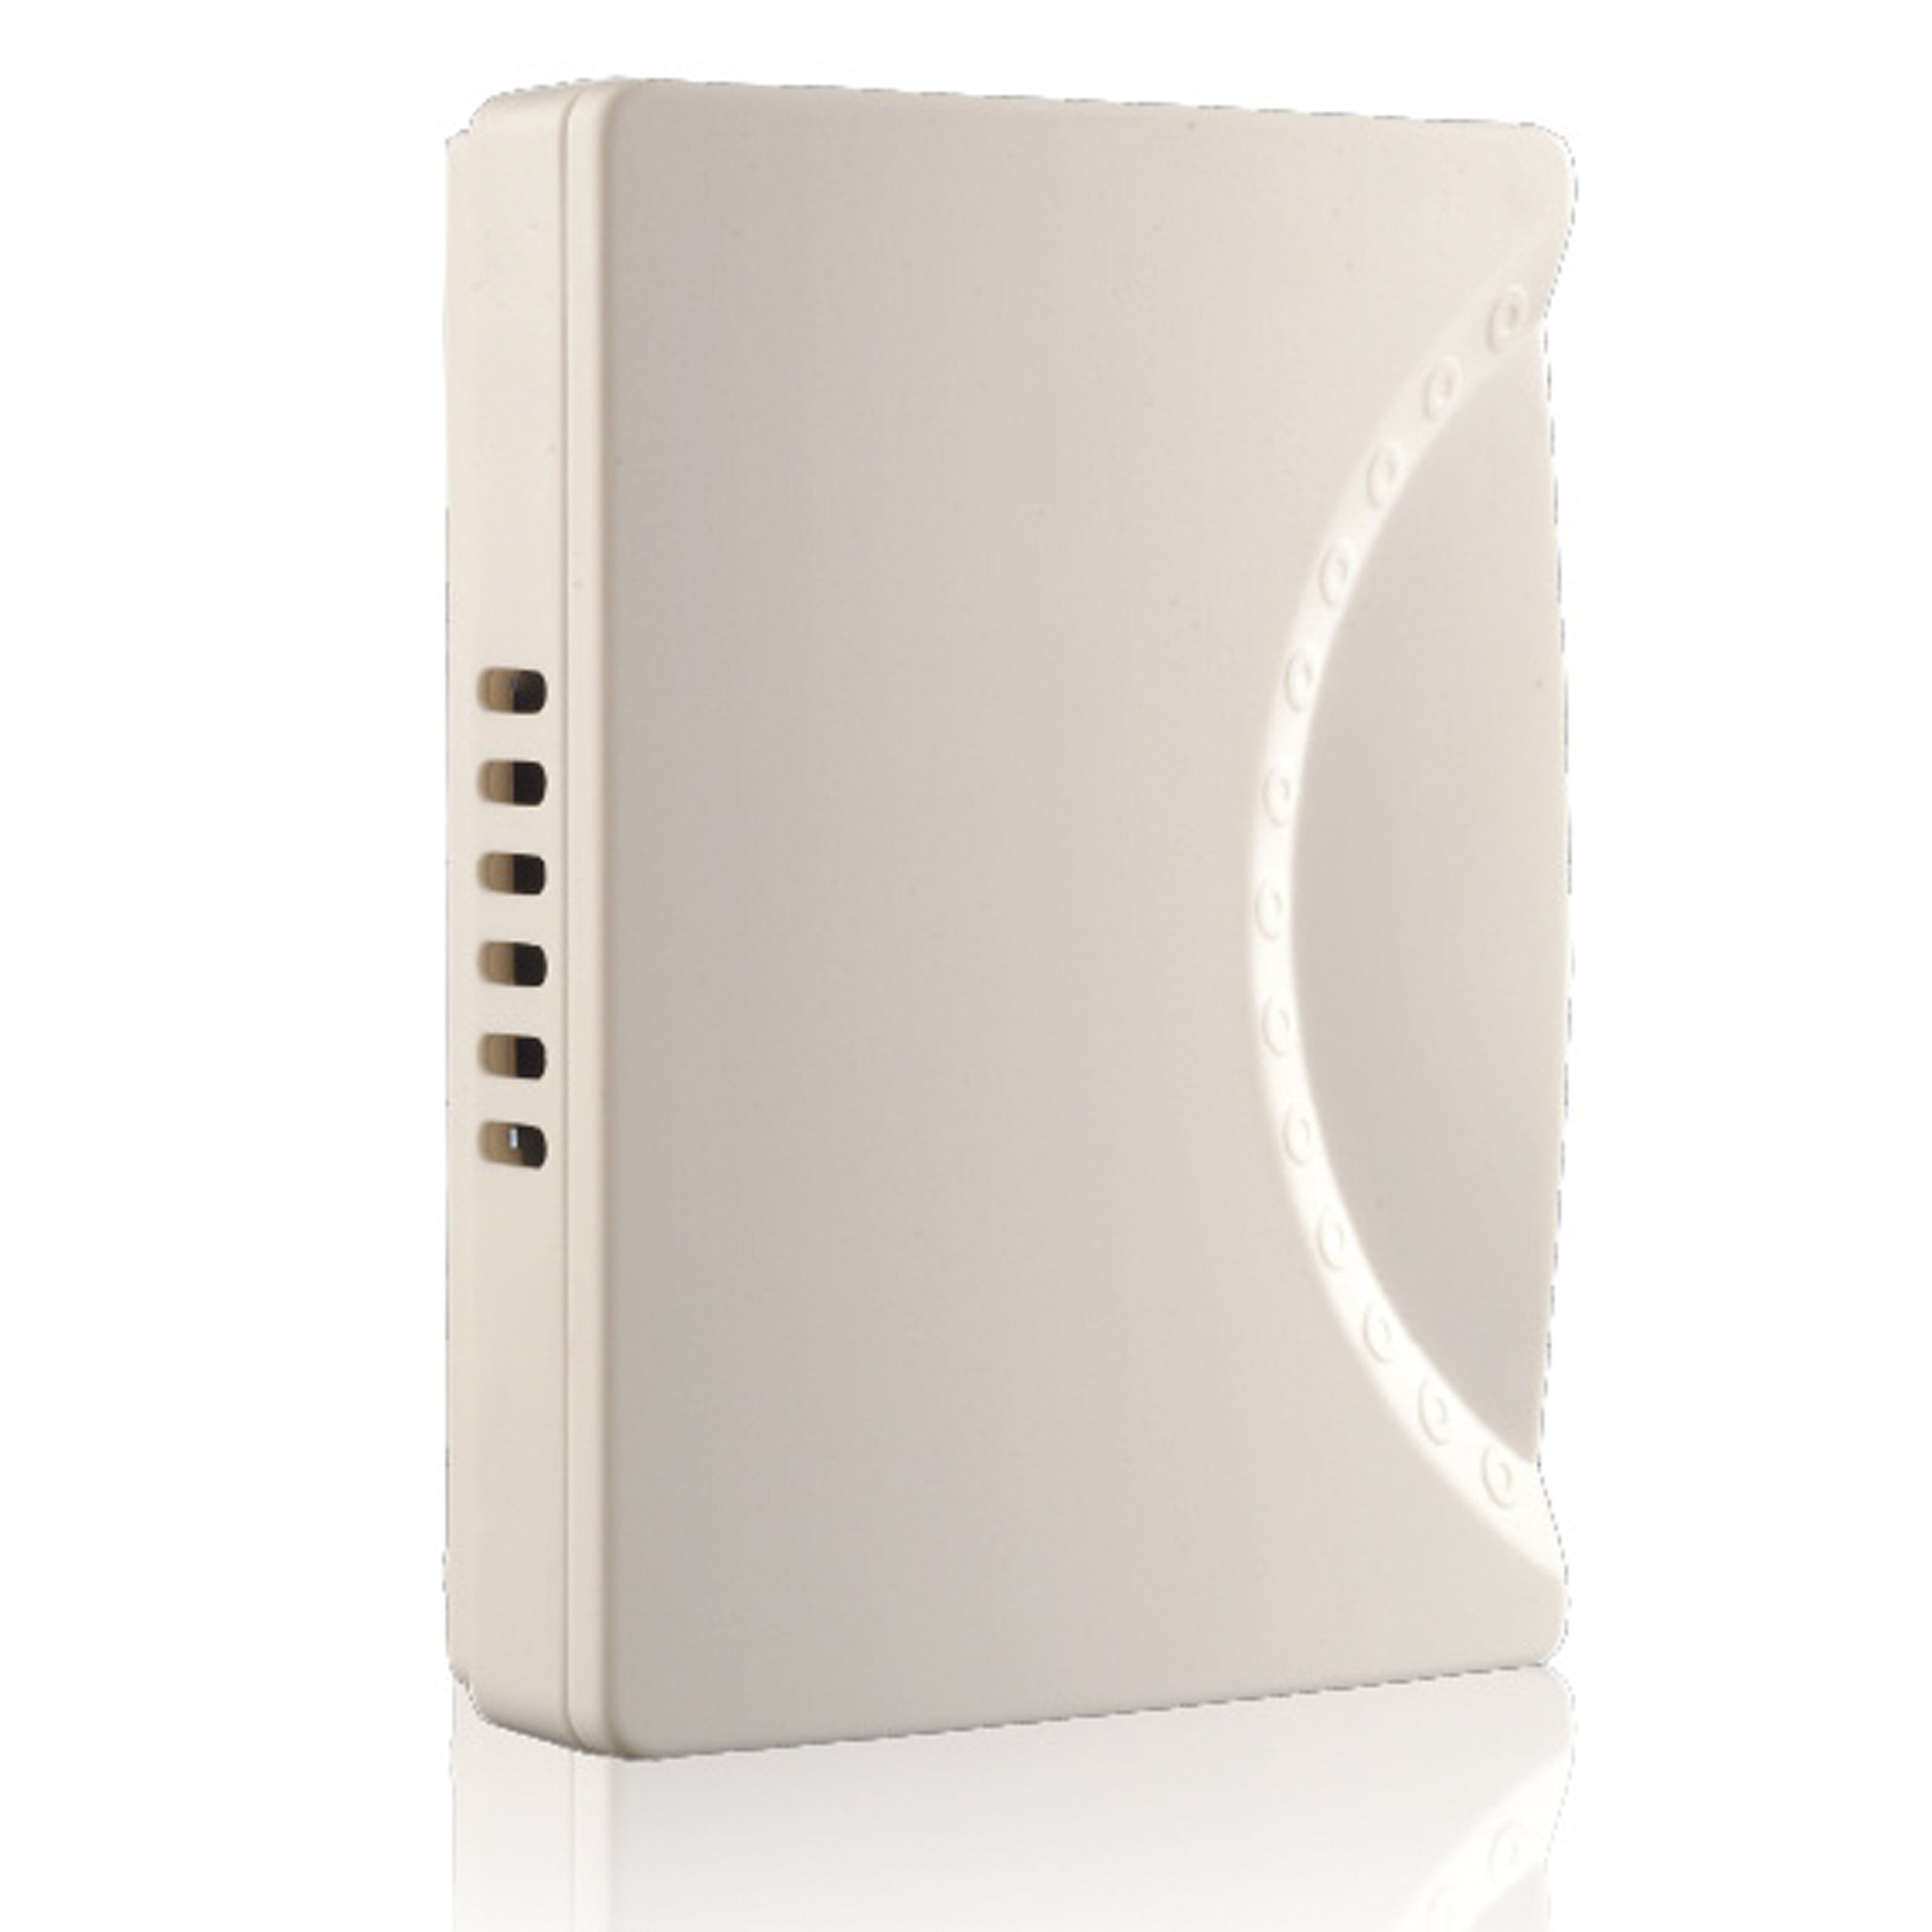 Byron 779 Wired Wall Mounted Chime